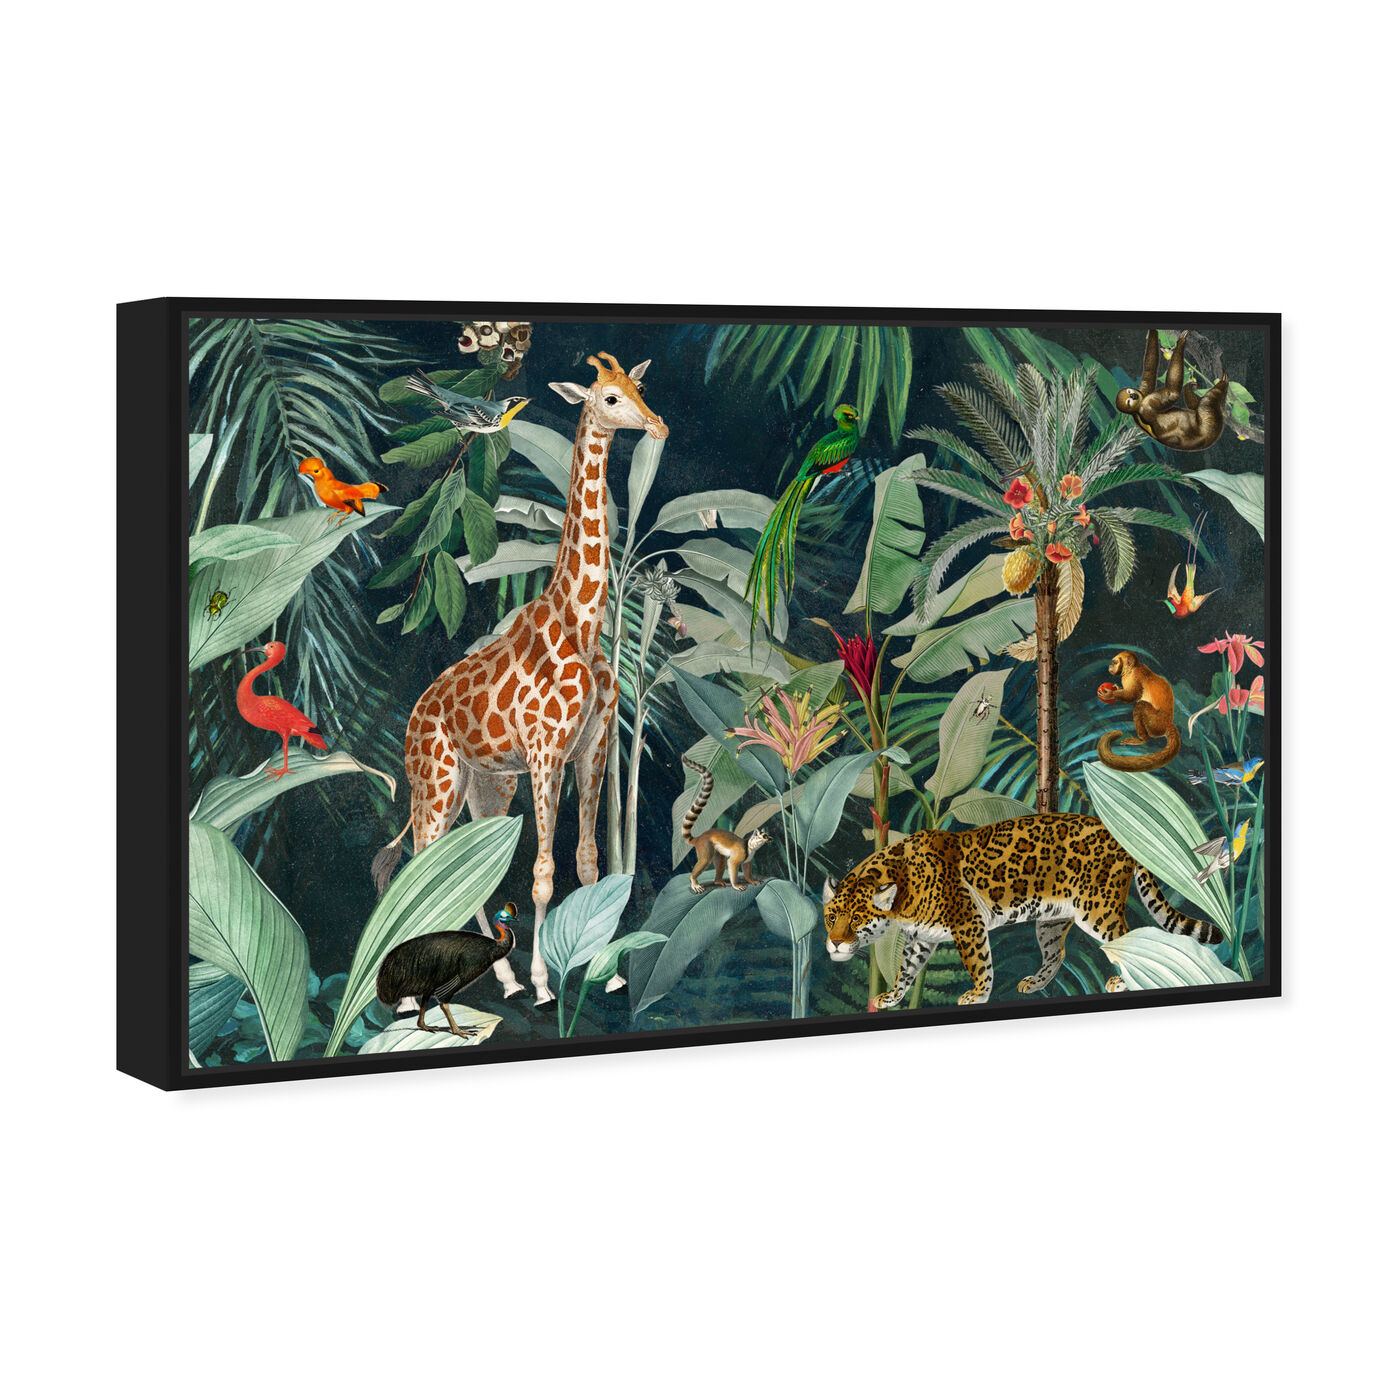 Angled view of Jungle Reves featuring animals and zoo and wild animals art.